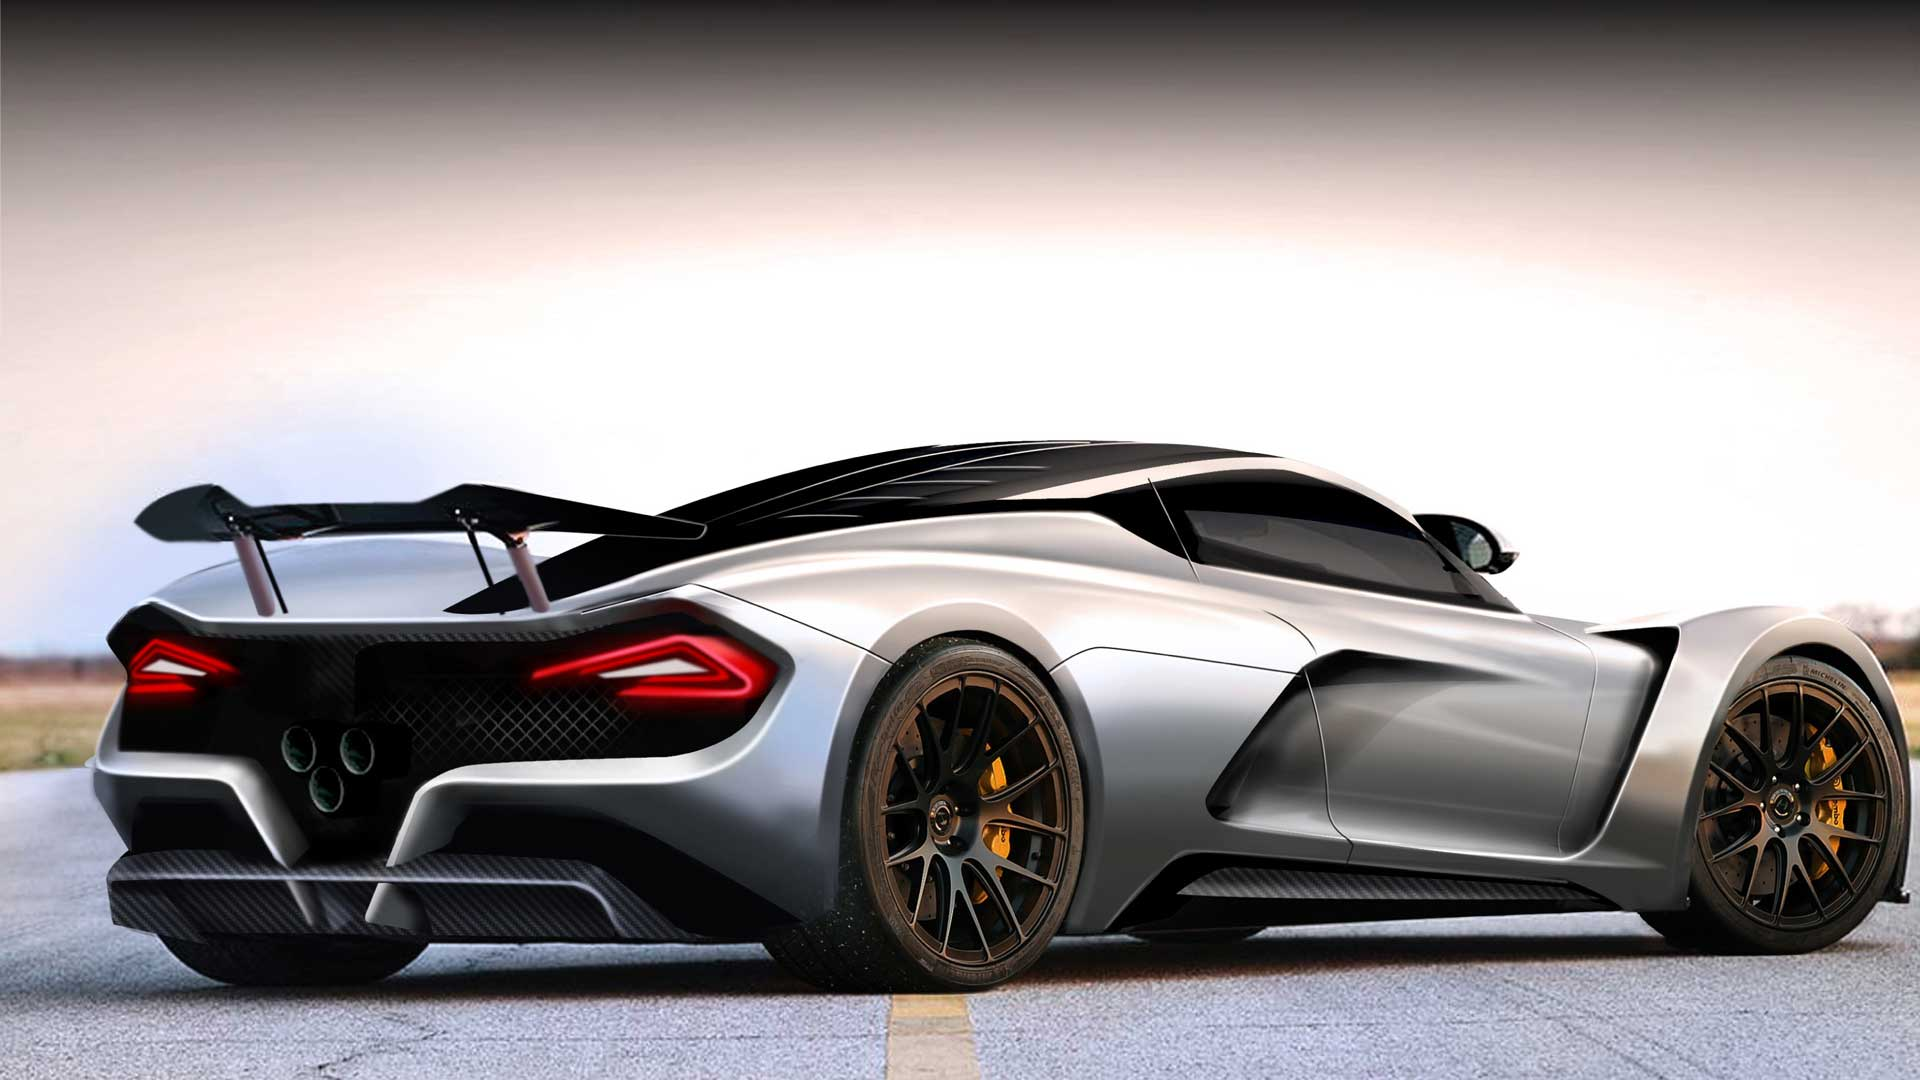 The Hennessey Venom F5 2015